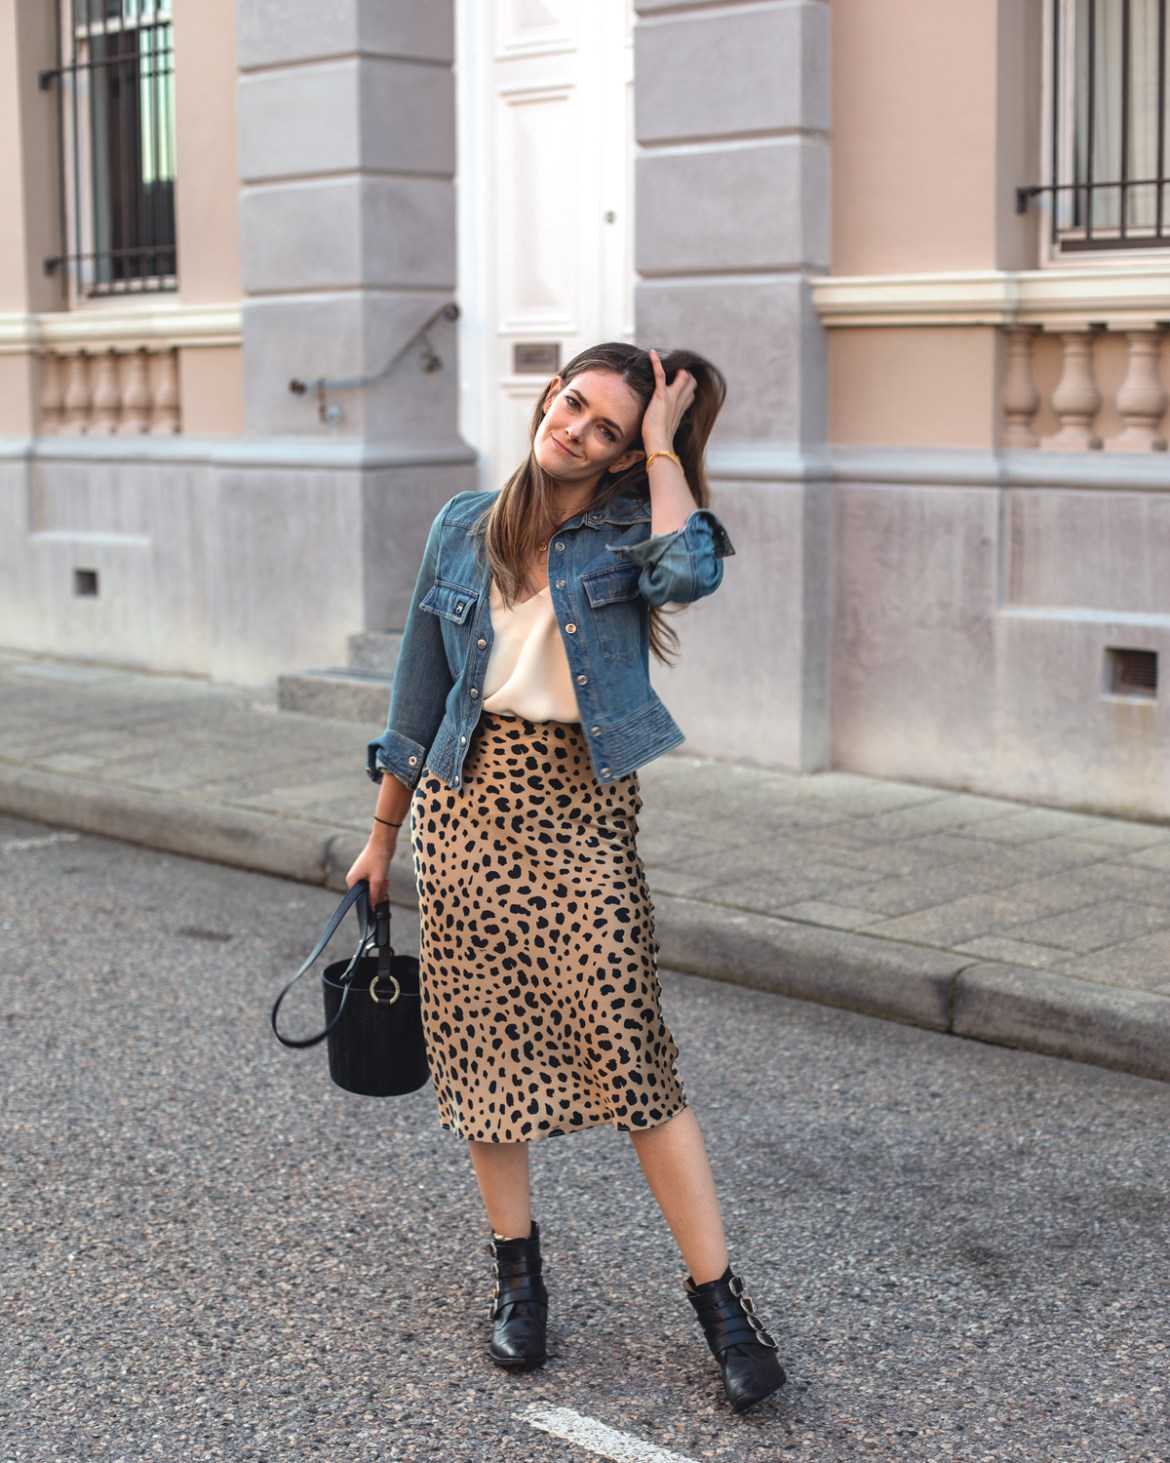 Naomi wild things leopard print silk slip skirt by Realisation Par size guide and outfit idea Inspiring Wit fashion blogger Jenelle Witty